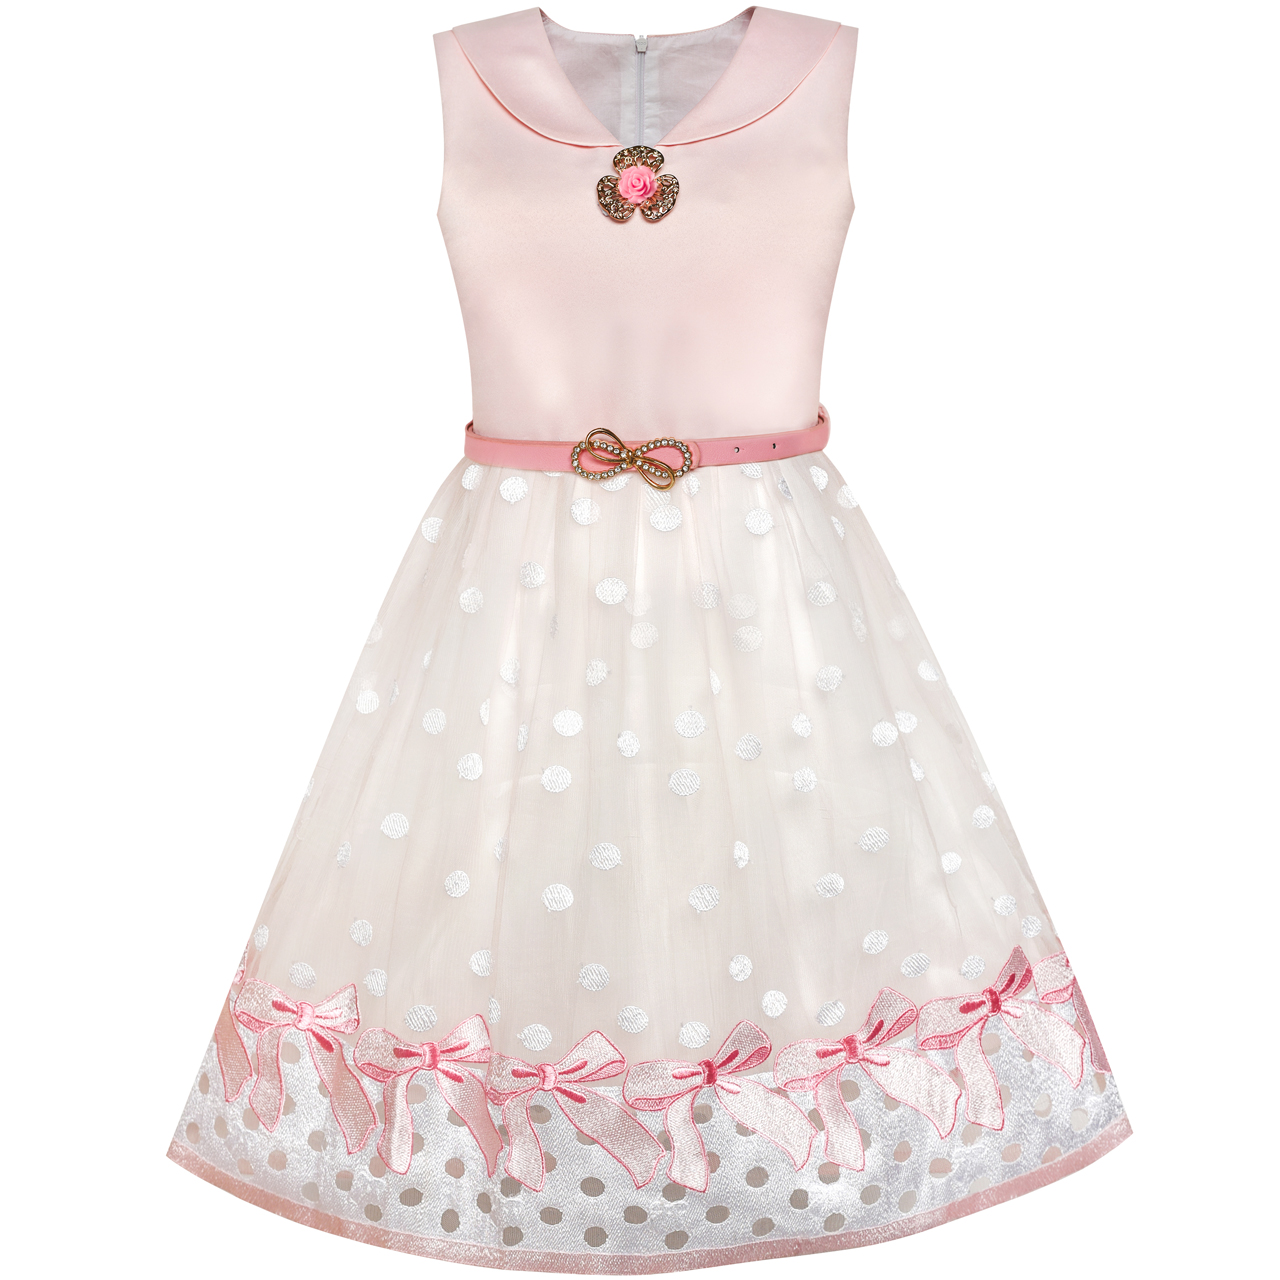 Flower Girl Dress Sailor Collar Pink Belted Bow Tie Elegant Dress 2018 Summer Princess Wedding Party Dresses Clothes Size 7-14